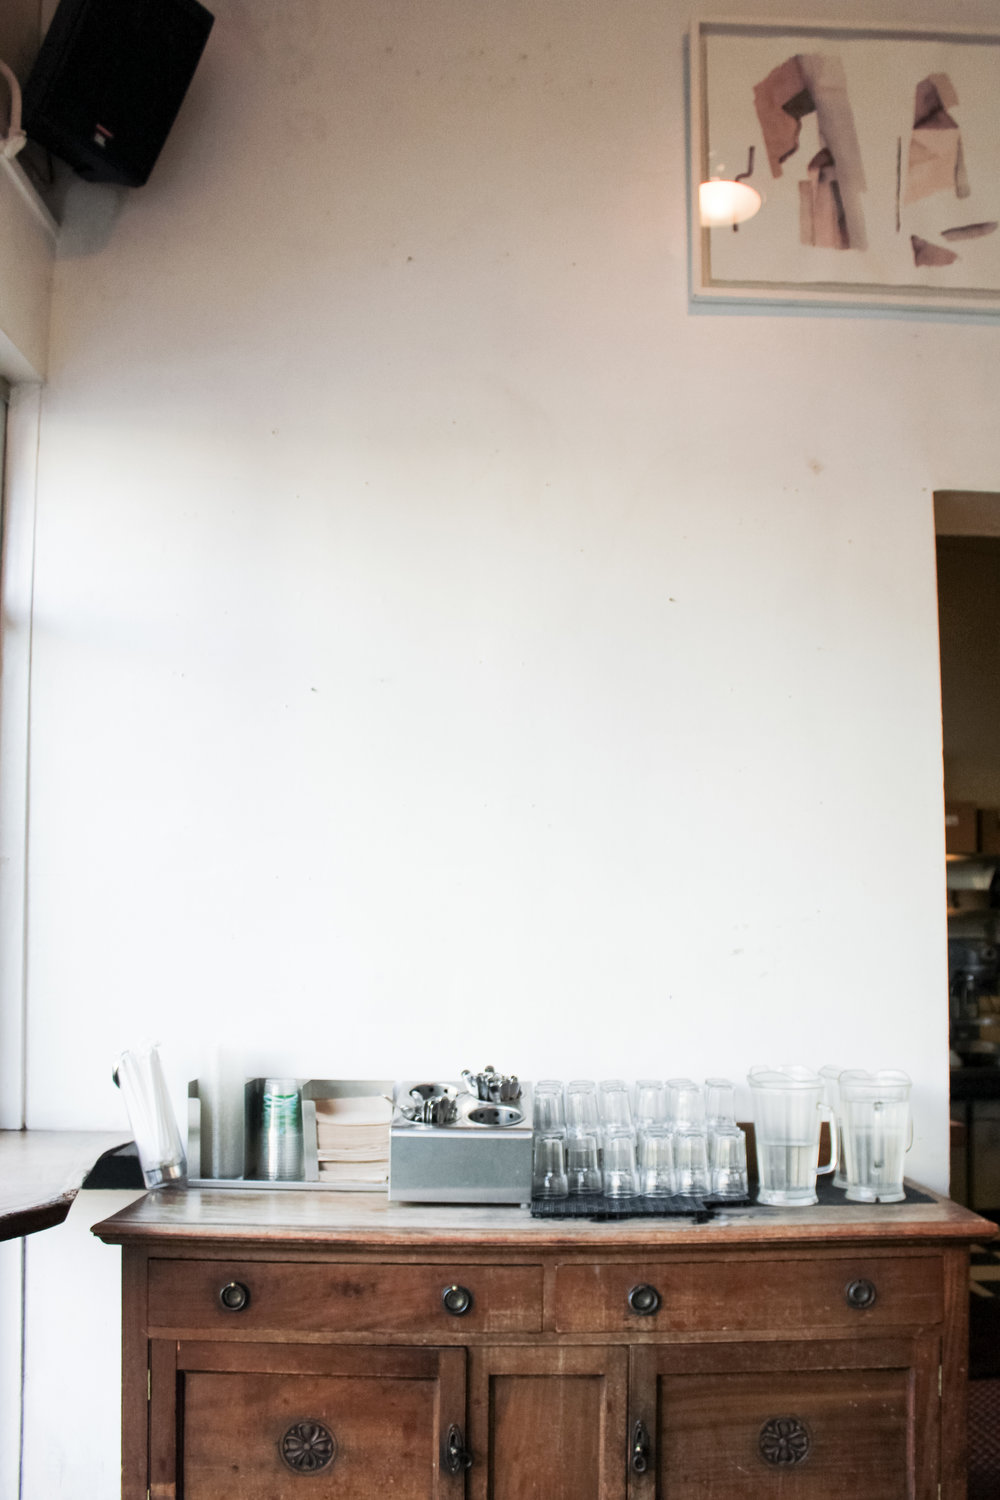 Tartine Bakery in the Mission District, San Francisco | tintedgreen